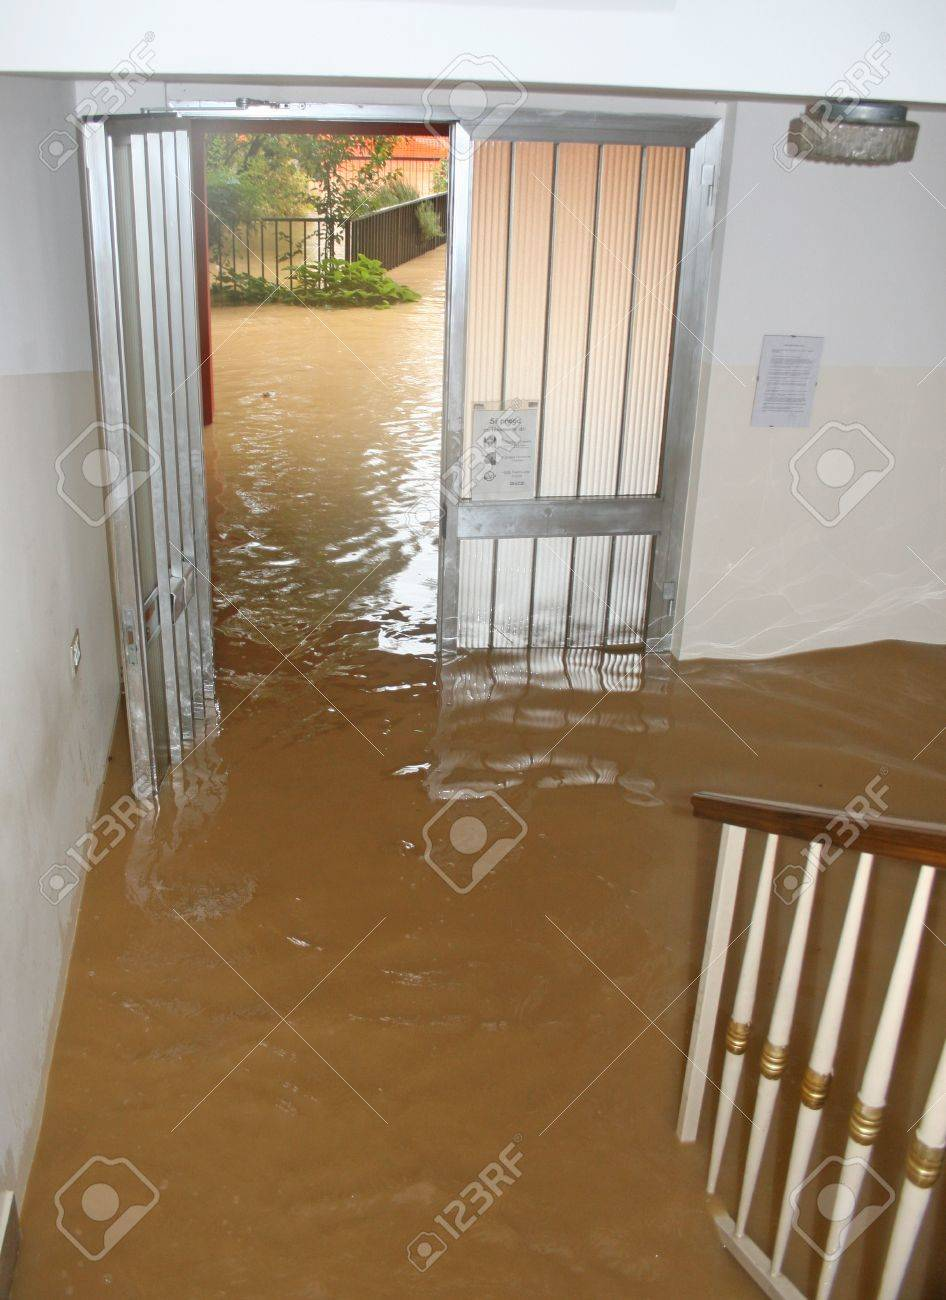 entrance and staircase of the House invaded by mud during a flooding of the River Stock Photo - 18113815